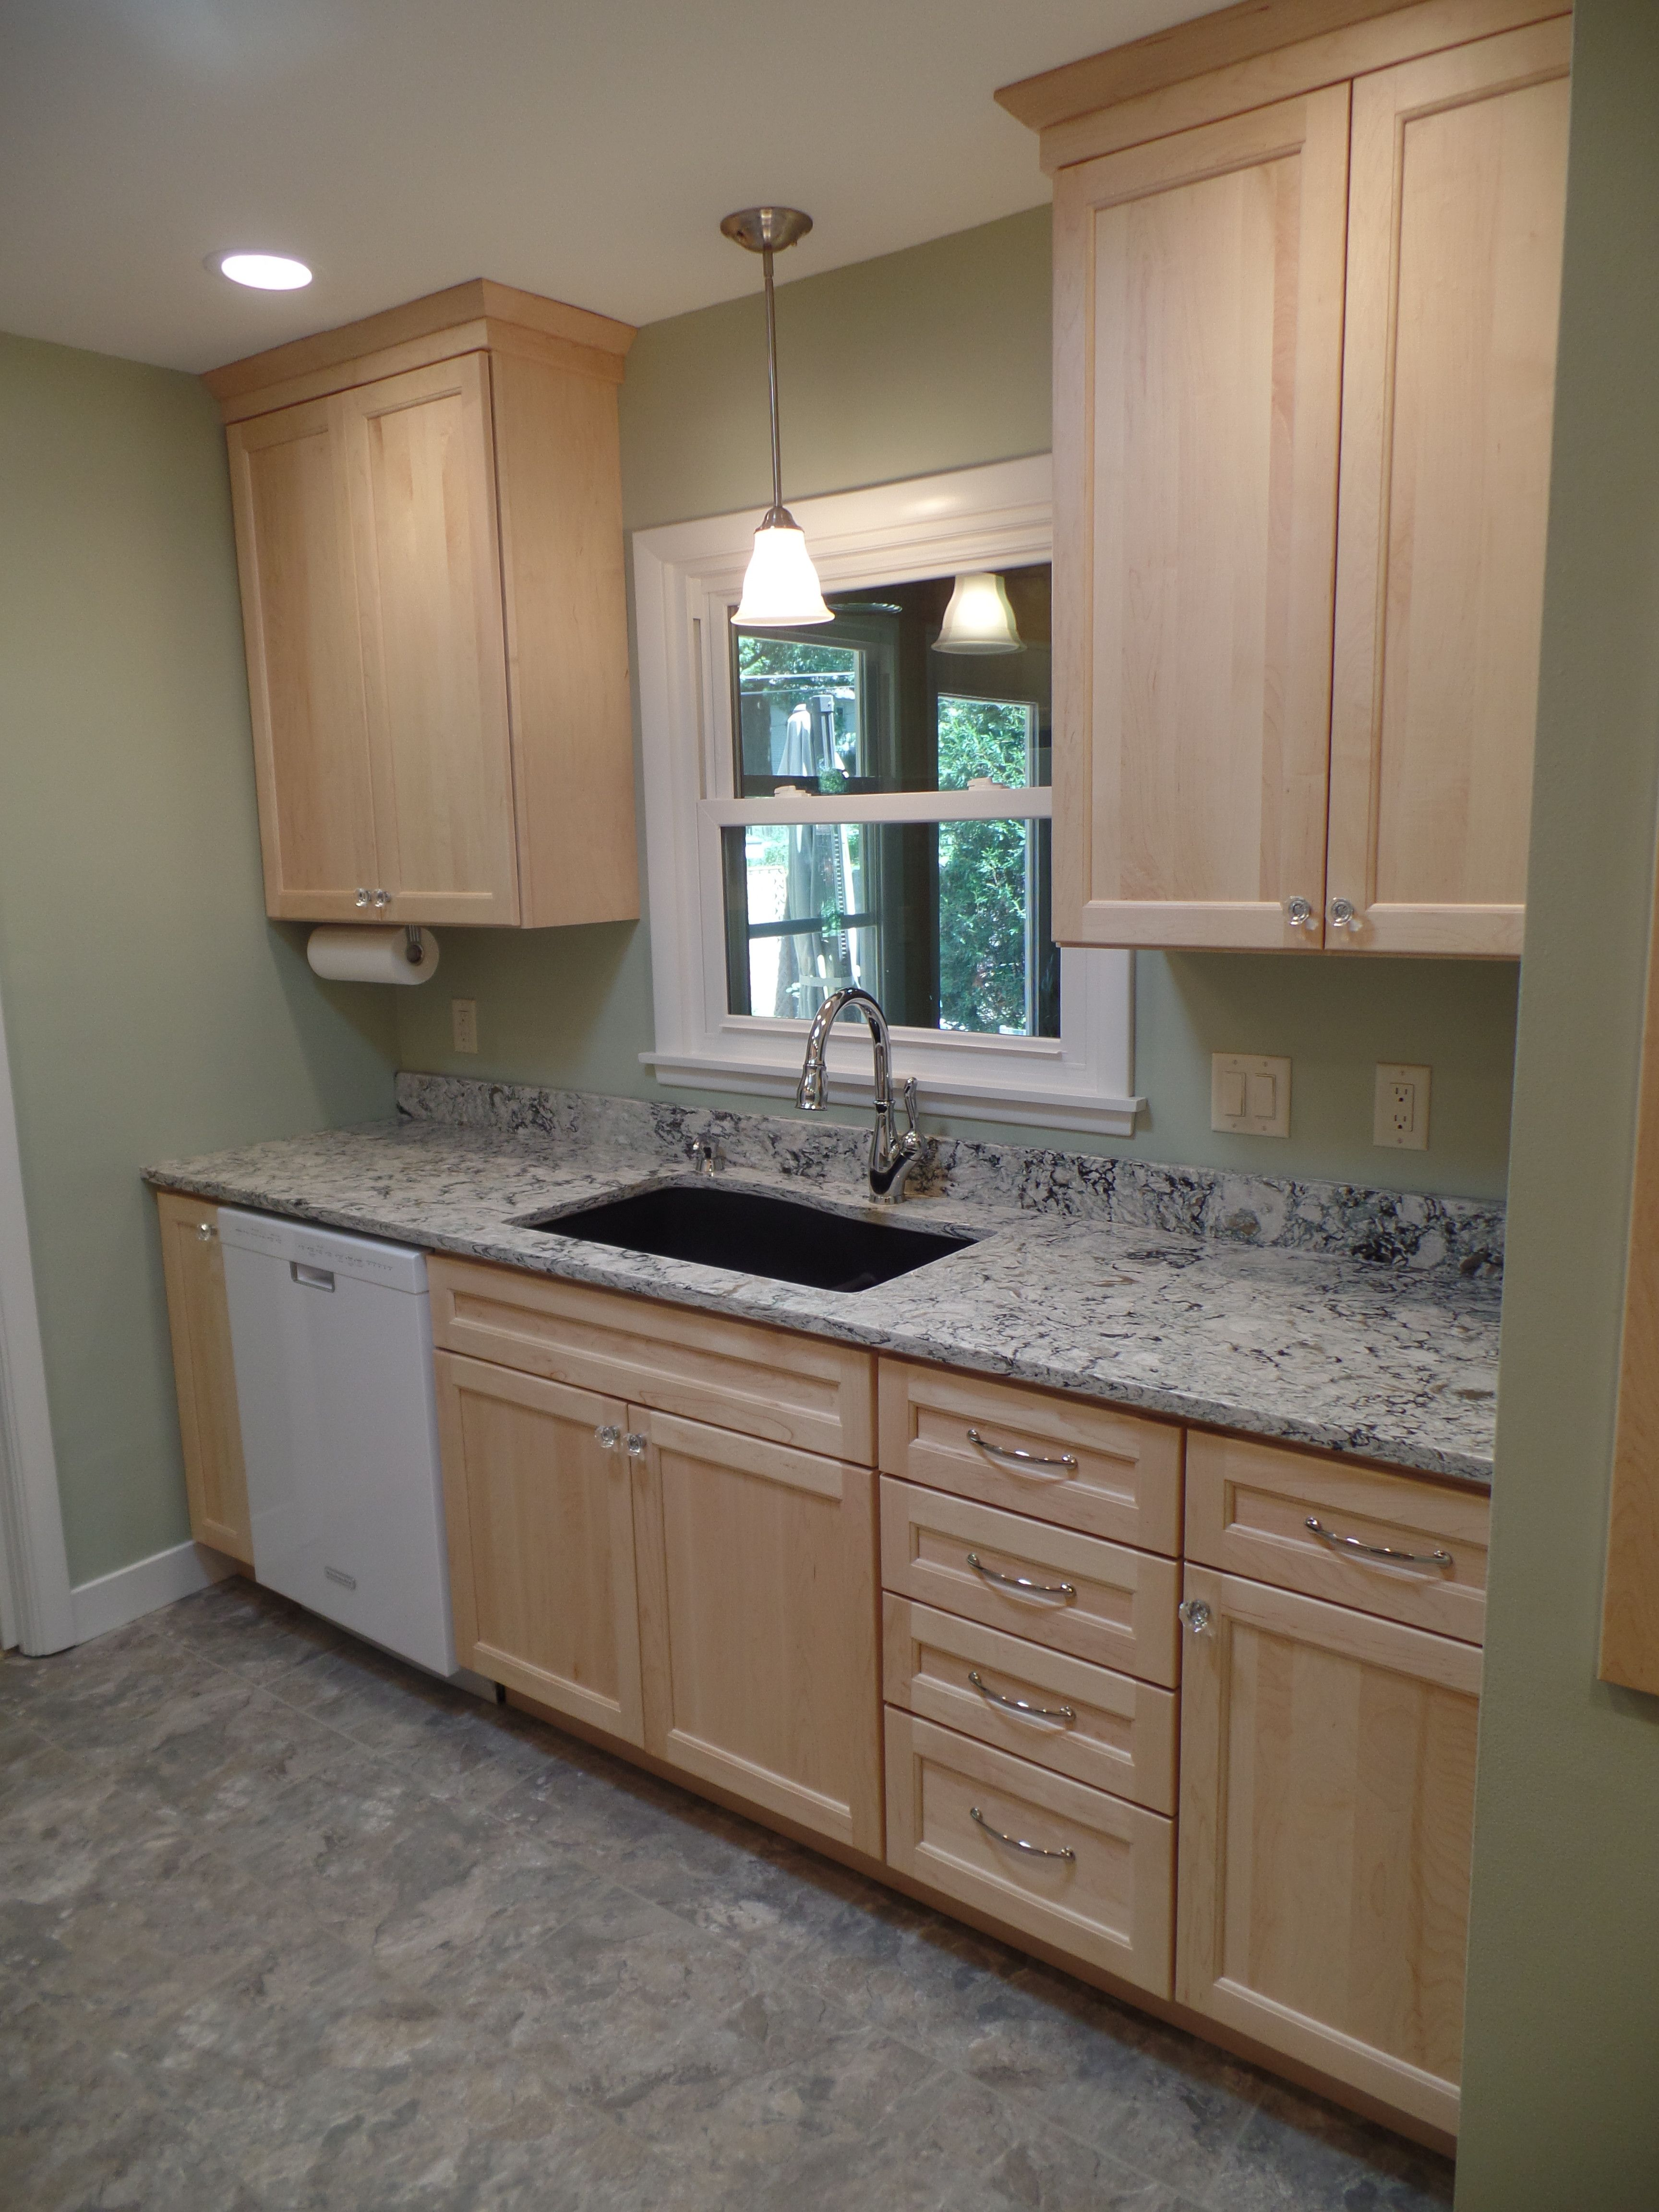 r d henry cabinetry cabinetry cool kitchens kitchen design on r kitchen cabinets id=24353